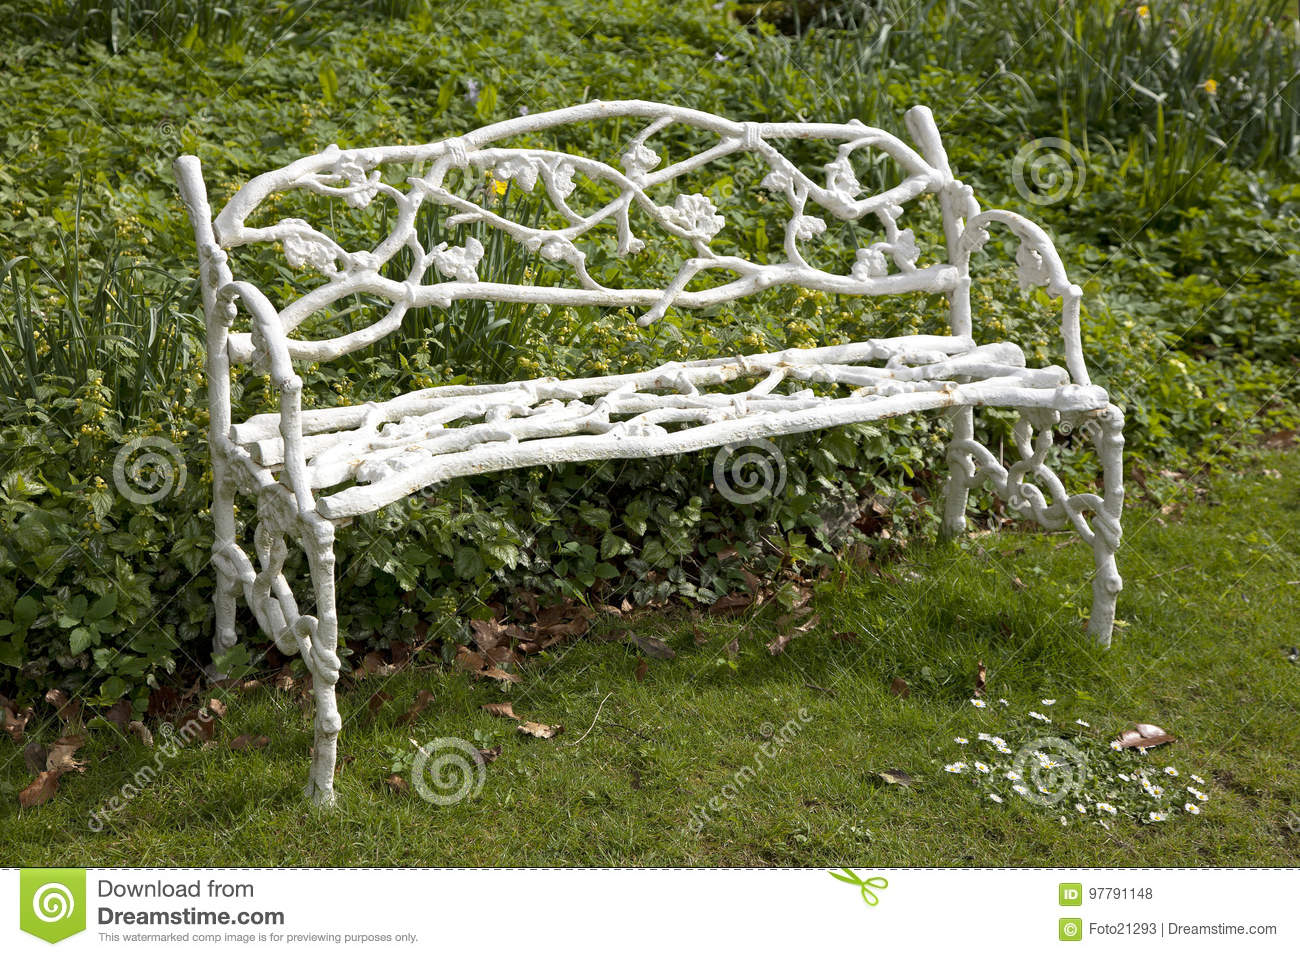 Download Old Vintage White Cast Iron Heavy Garden Bench Stock Photo   Image  Of White,